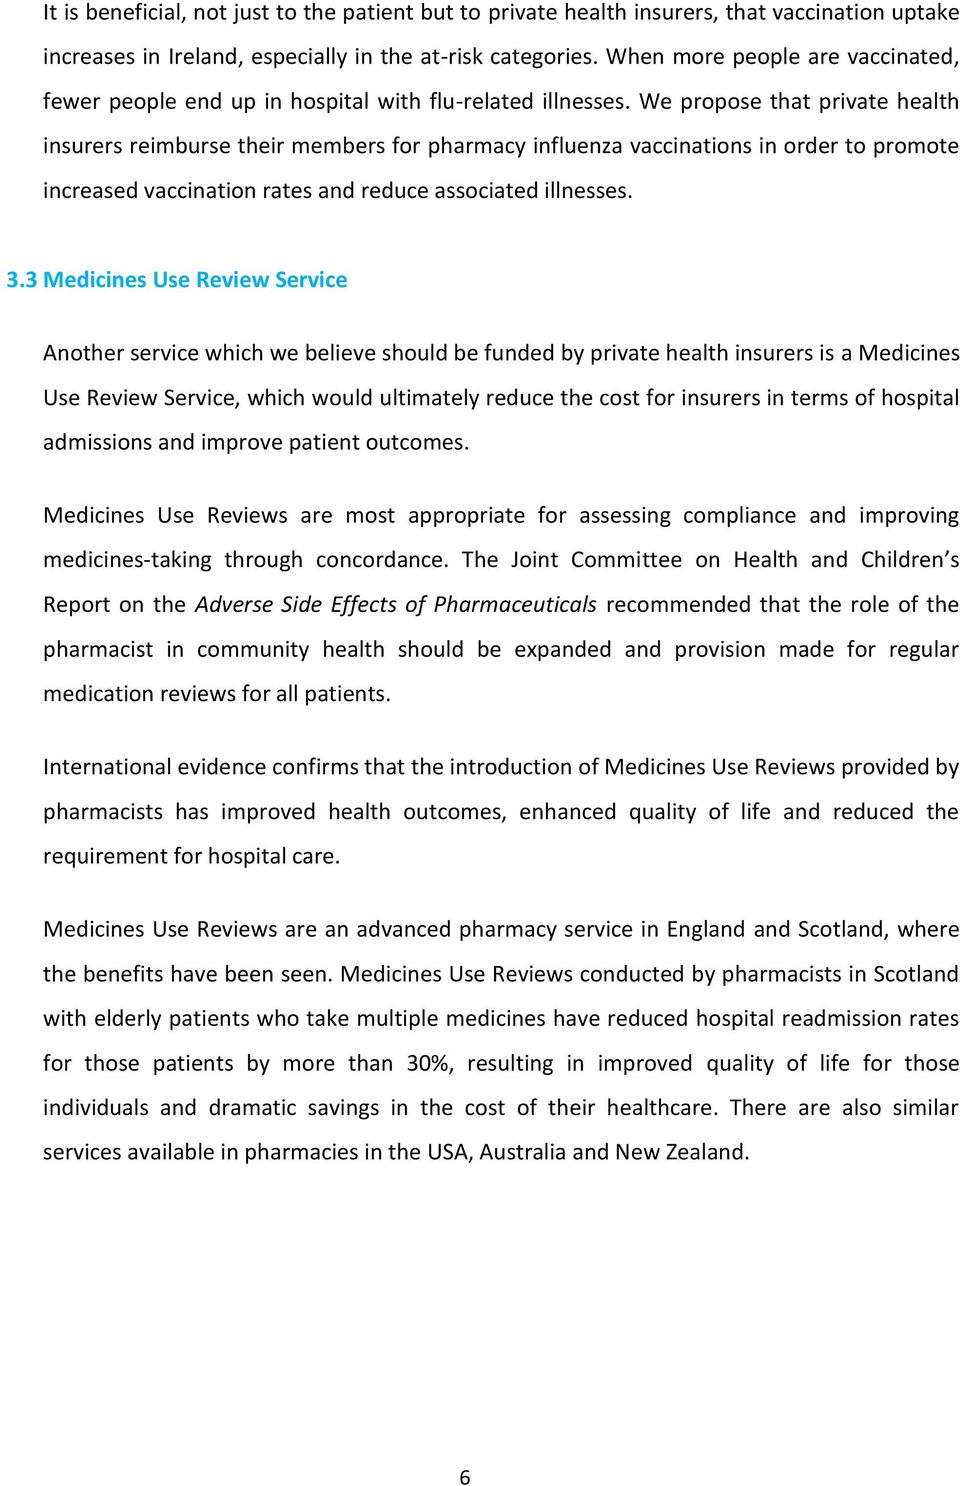 We propose that private health insurers reimburse their members for pharmacy influenza vaccinations in order to promote increased vaccination rates and reduce associated illnesses. 3.